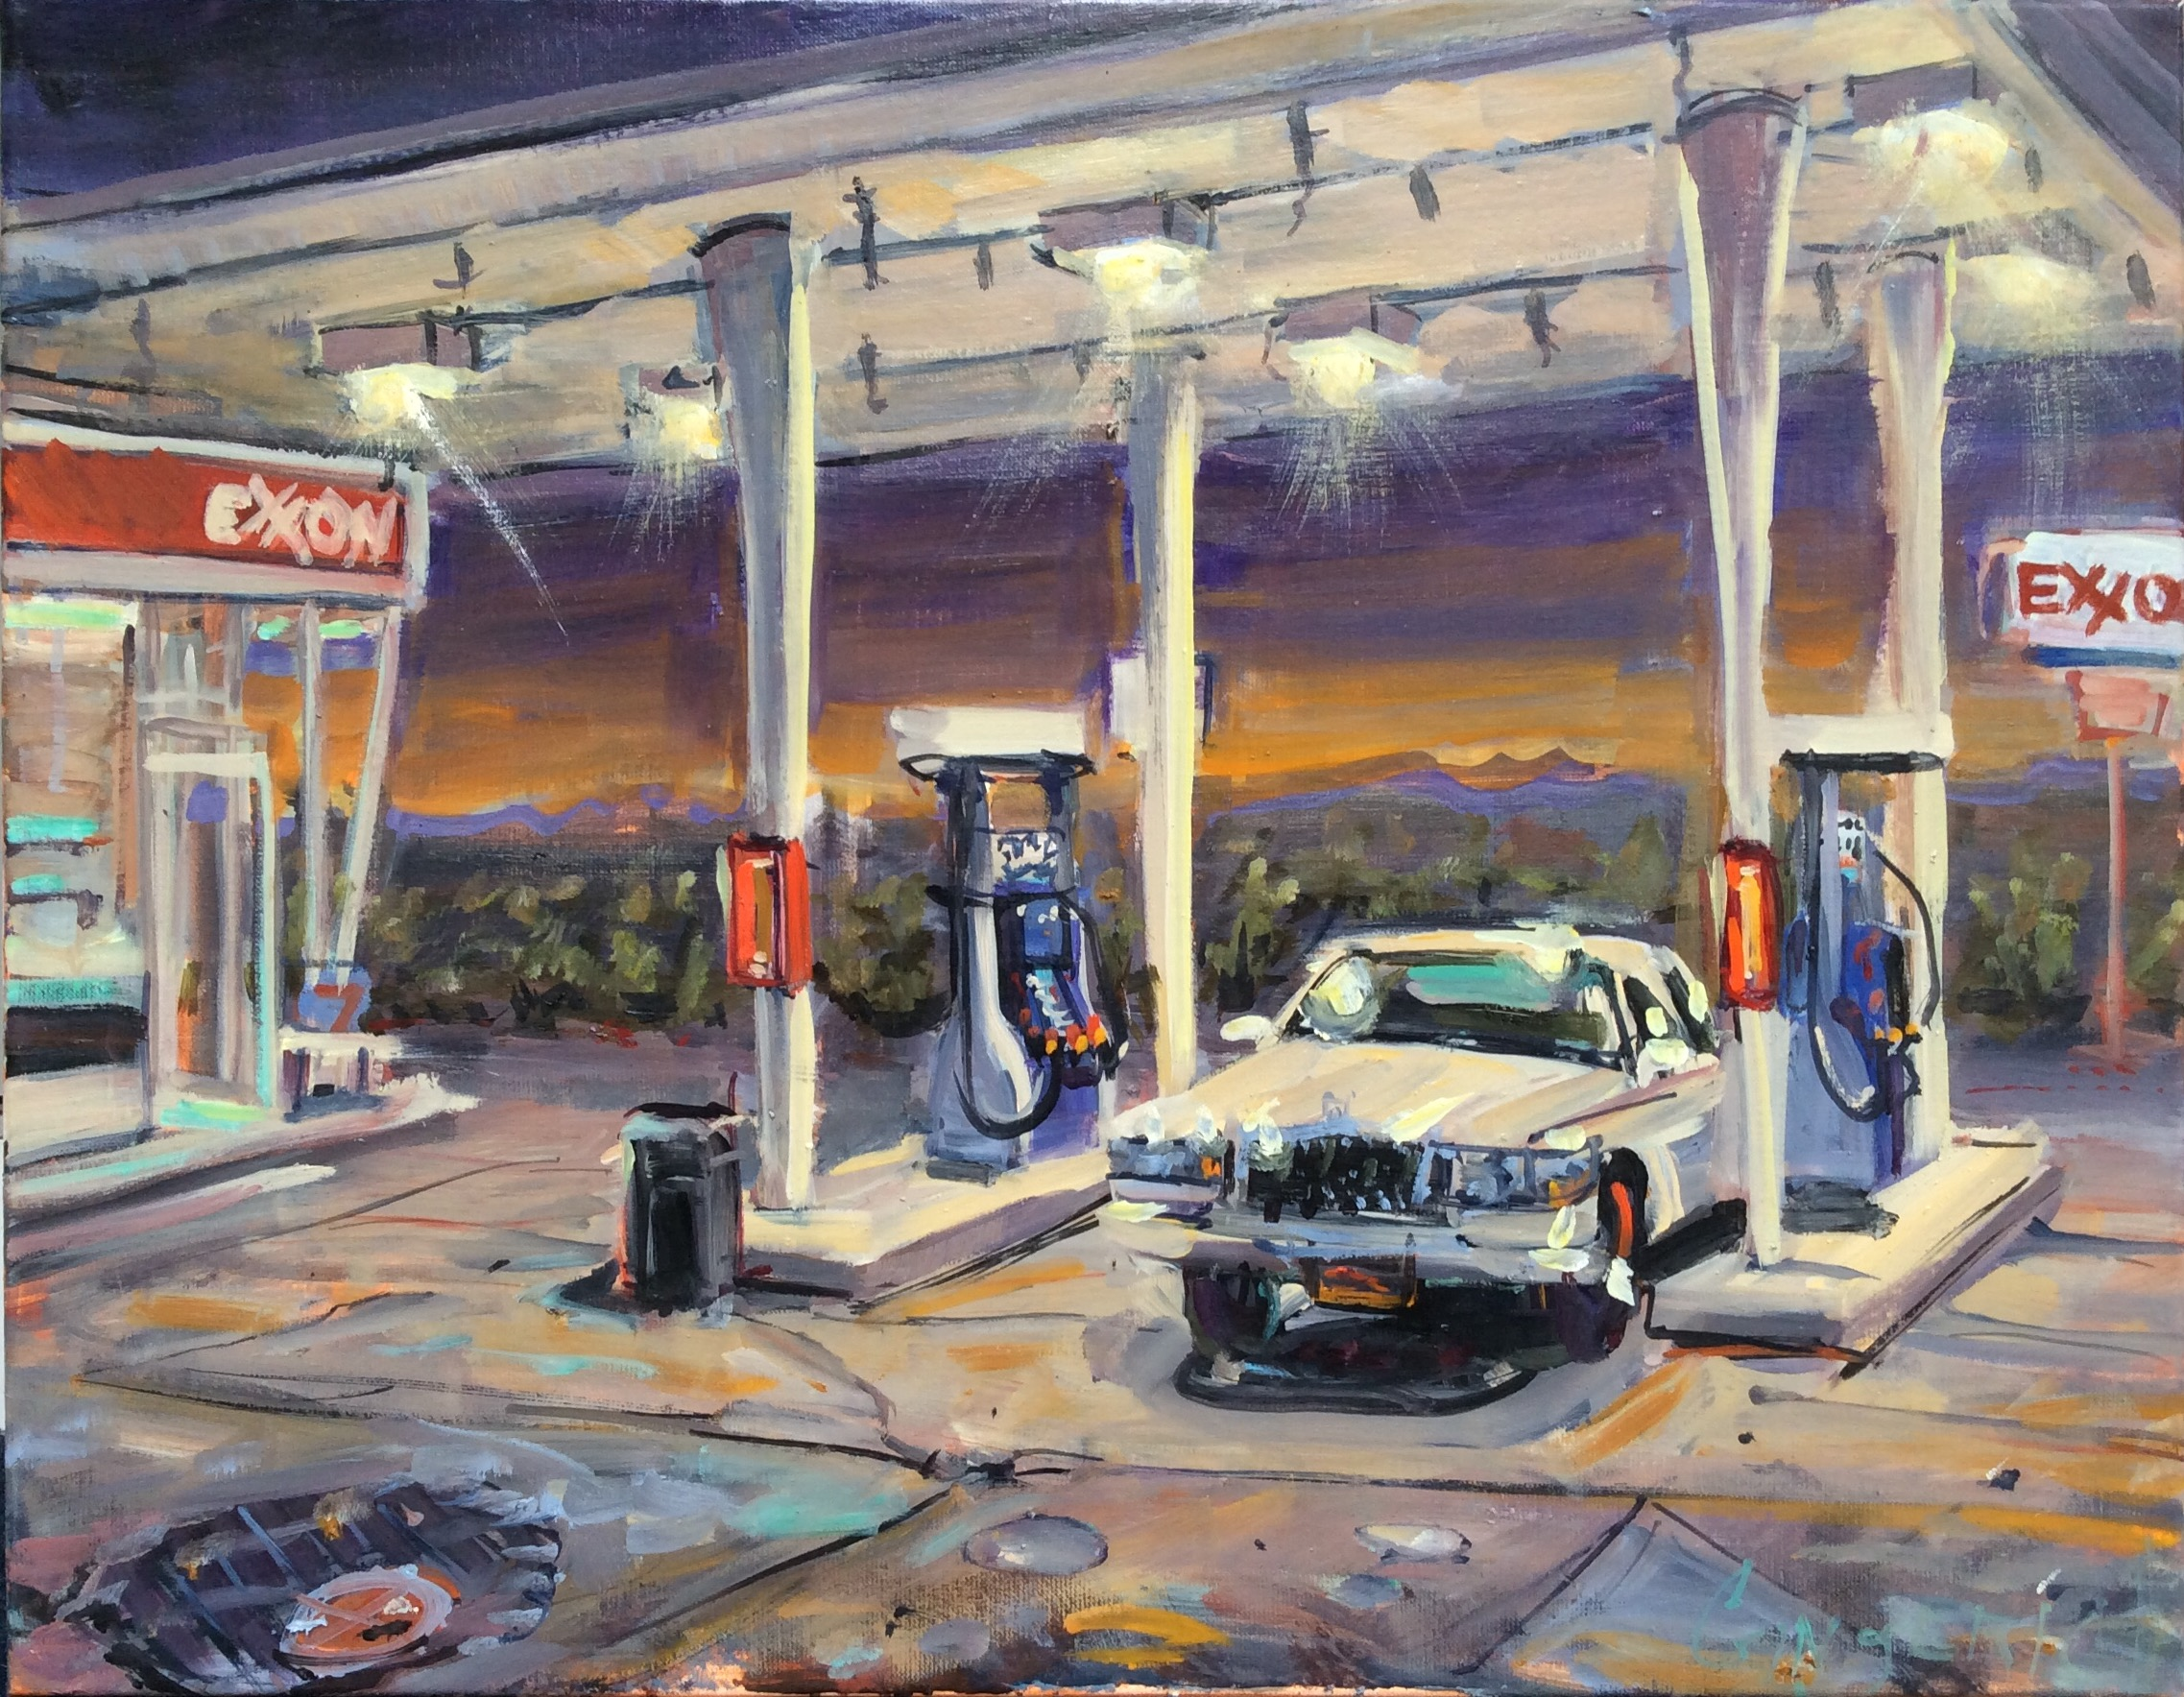 Exxon  22 x 28 inches, oil on linen